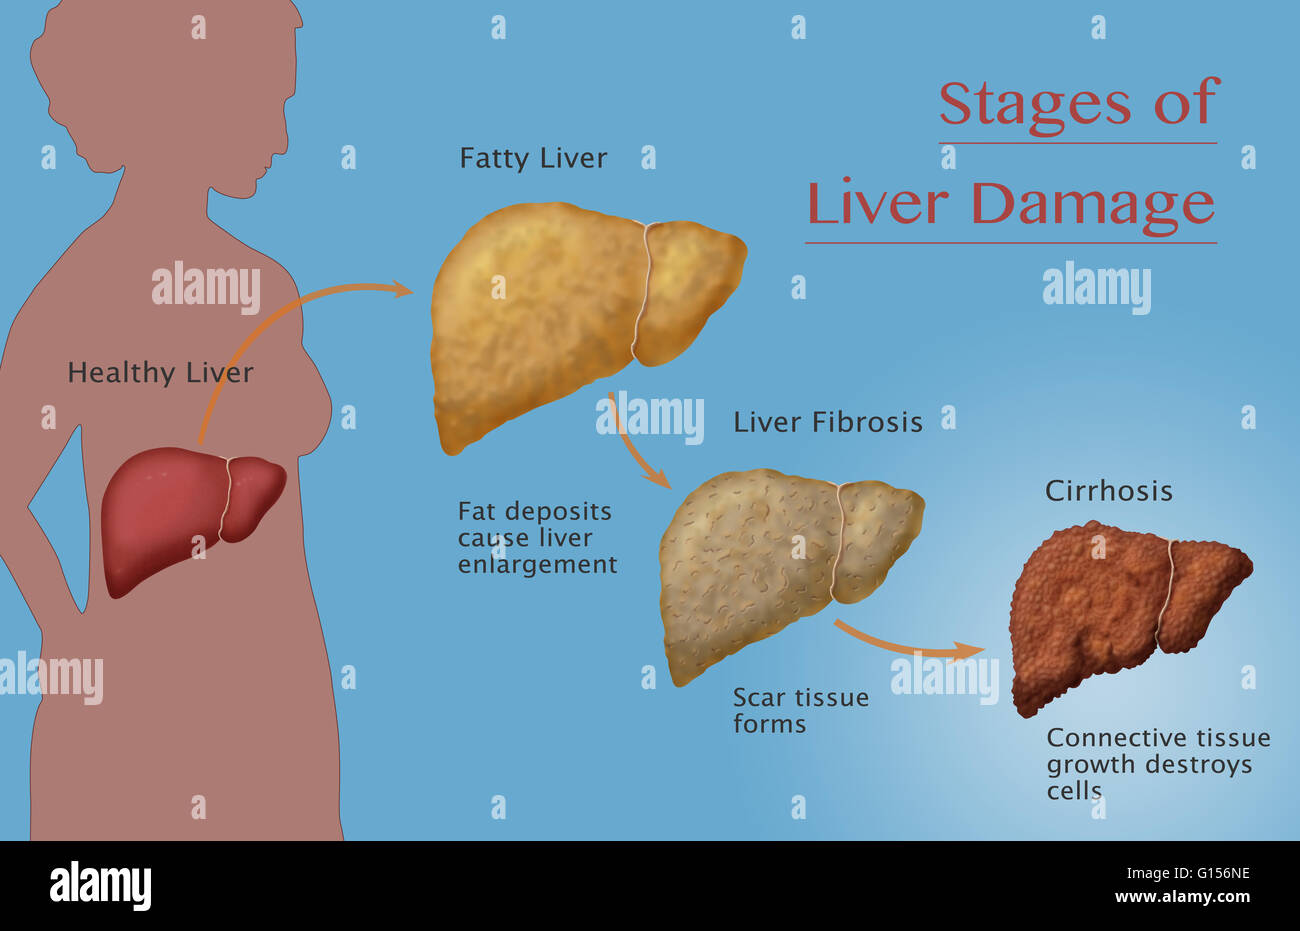 how to detect liver damage